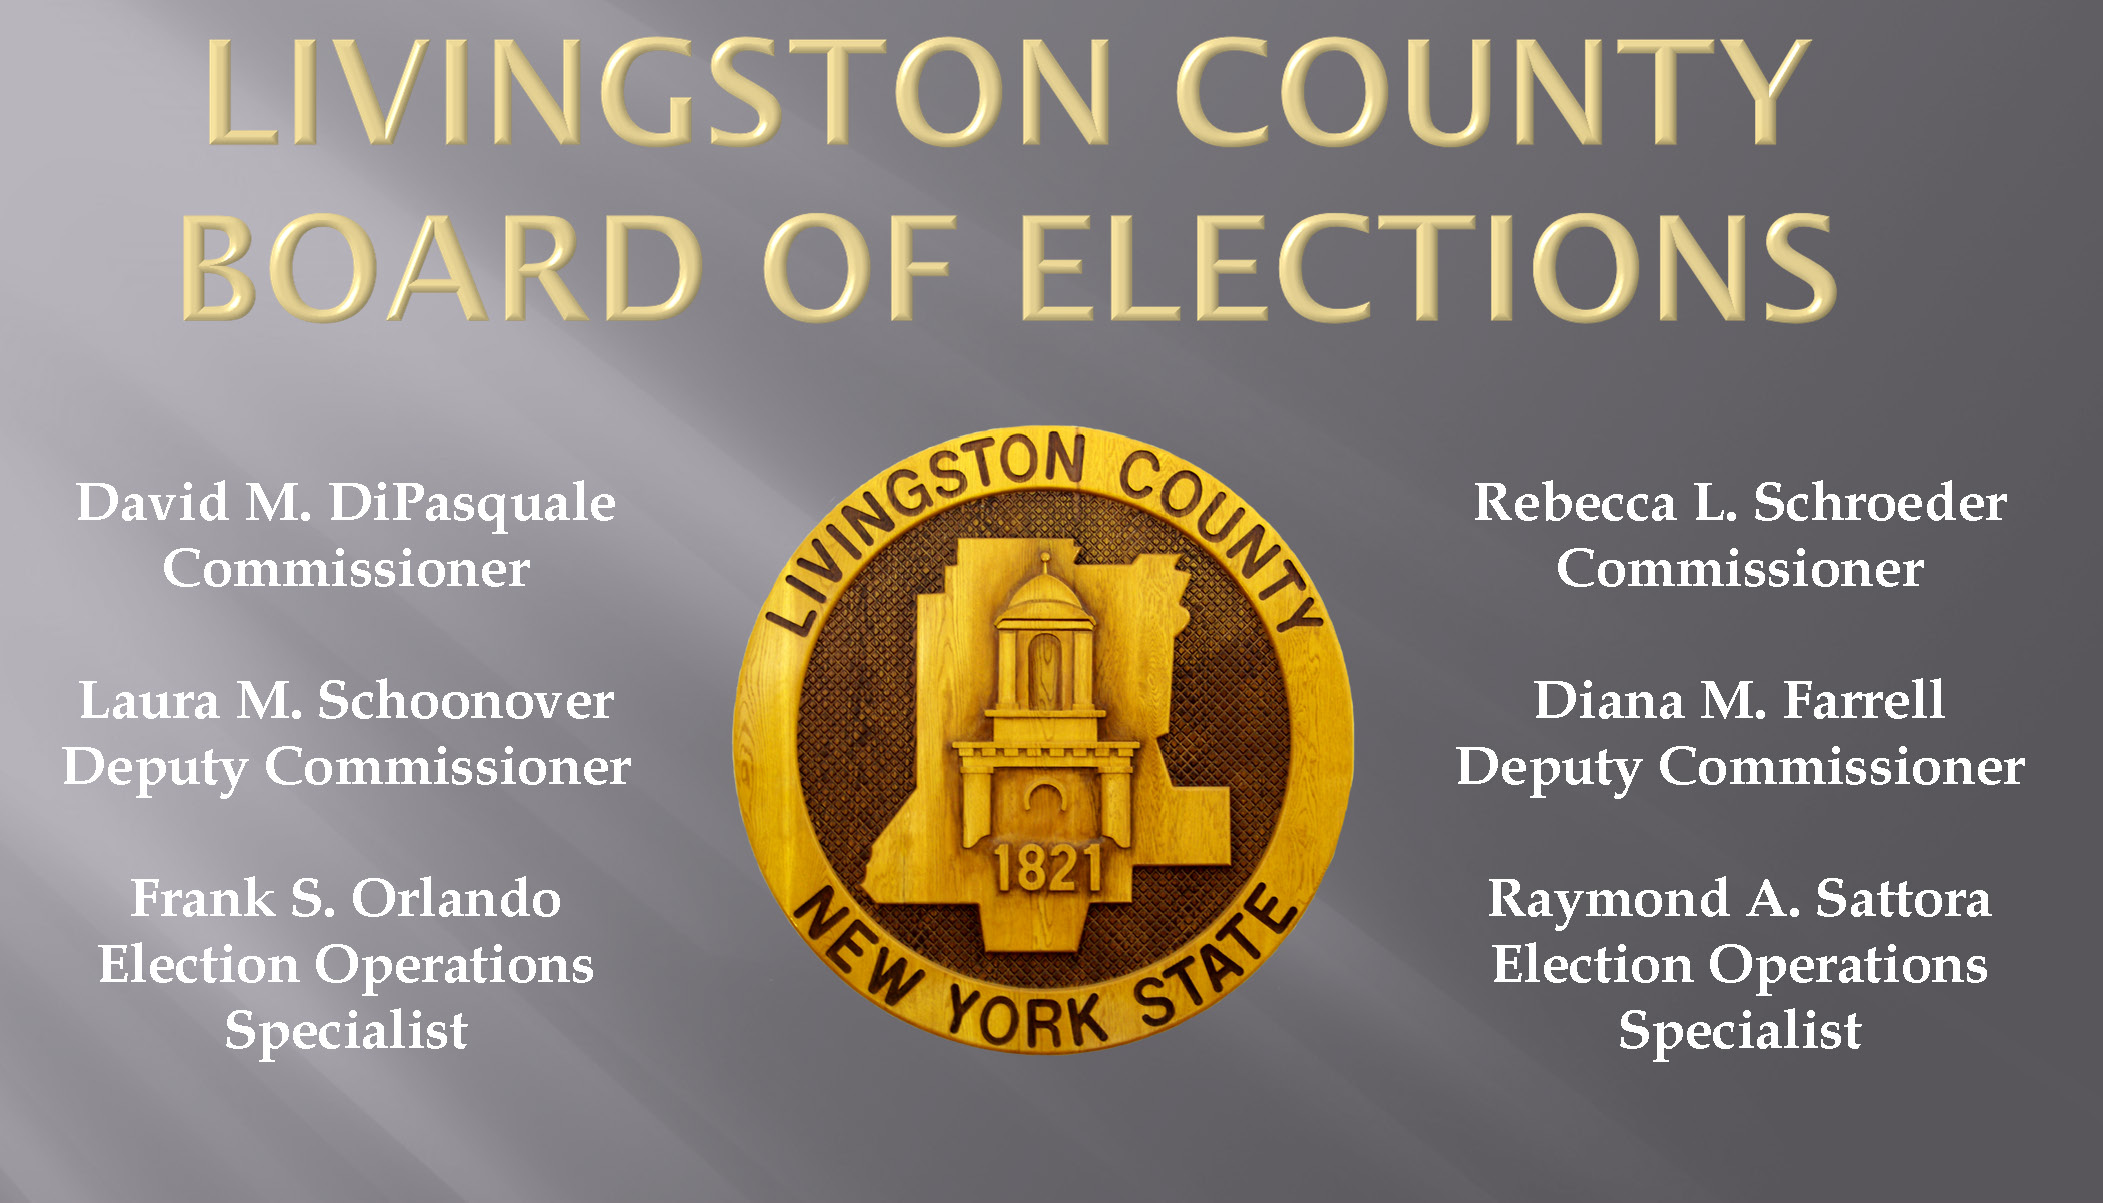 Livingston County, NY - Official Website - Board of Elections